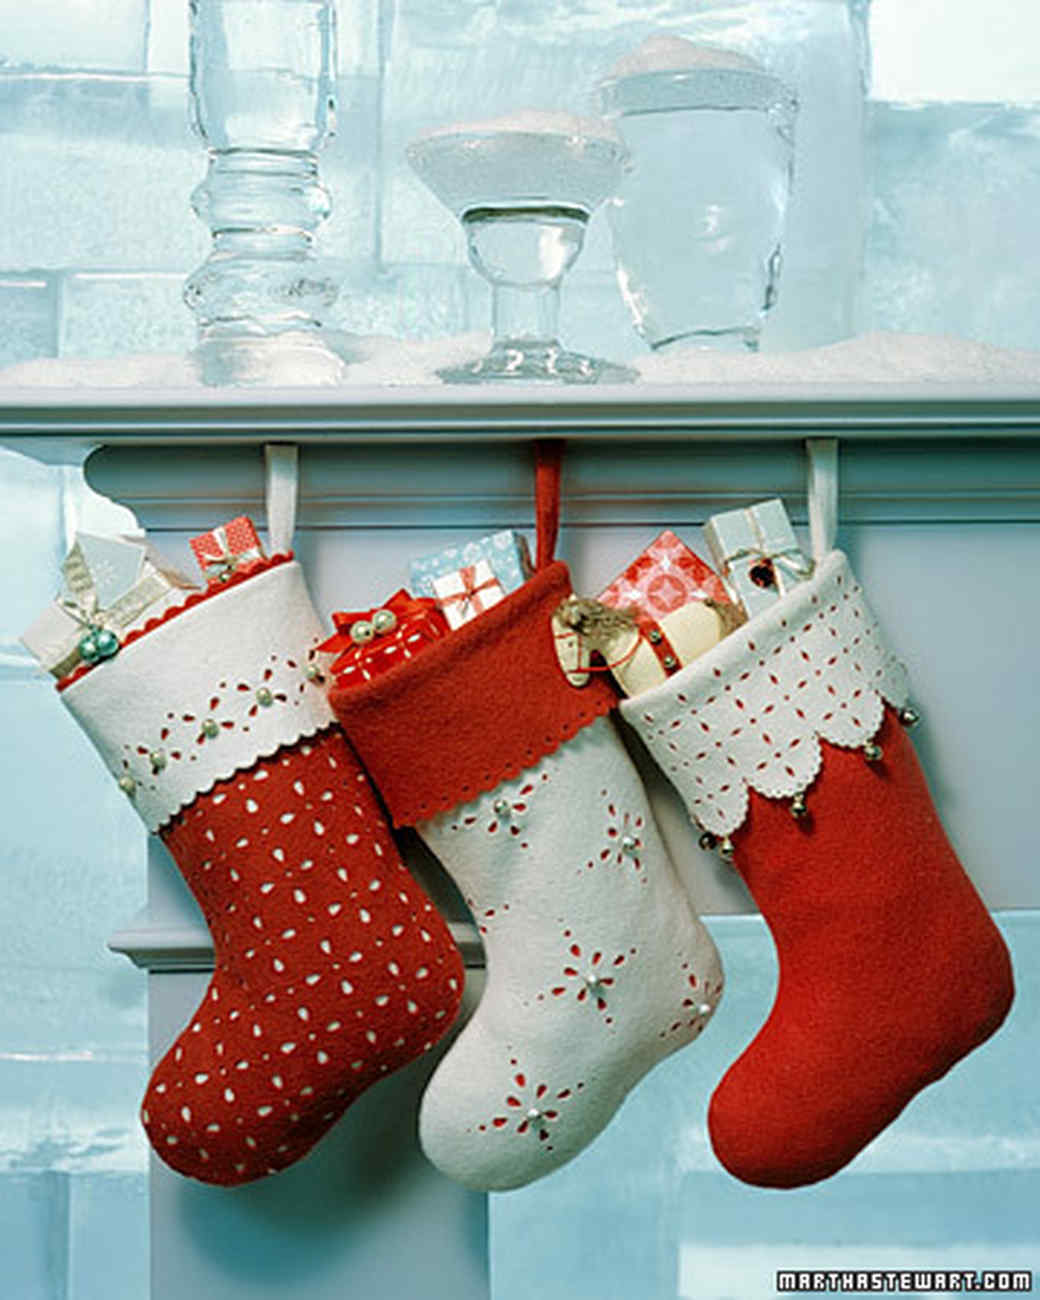 Jingle bell stockings martha stewart jeuxipadfo Gallery